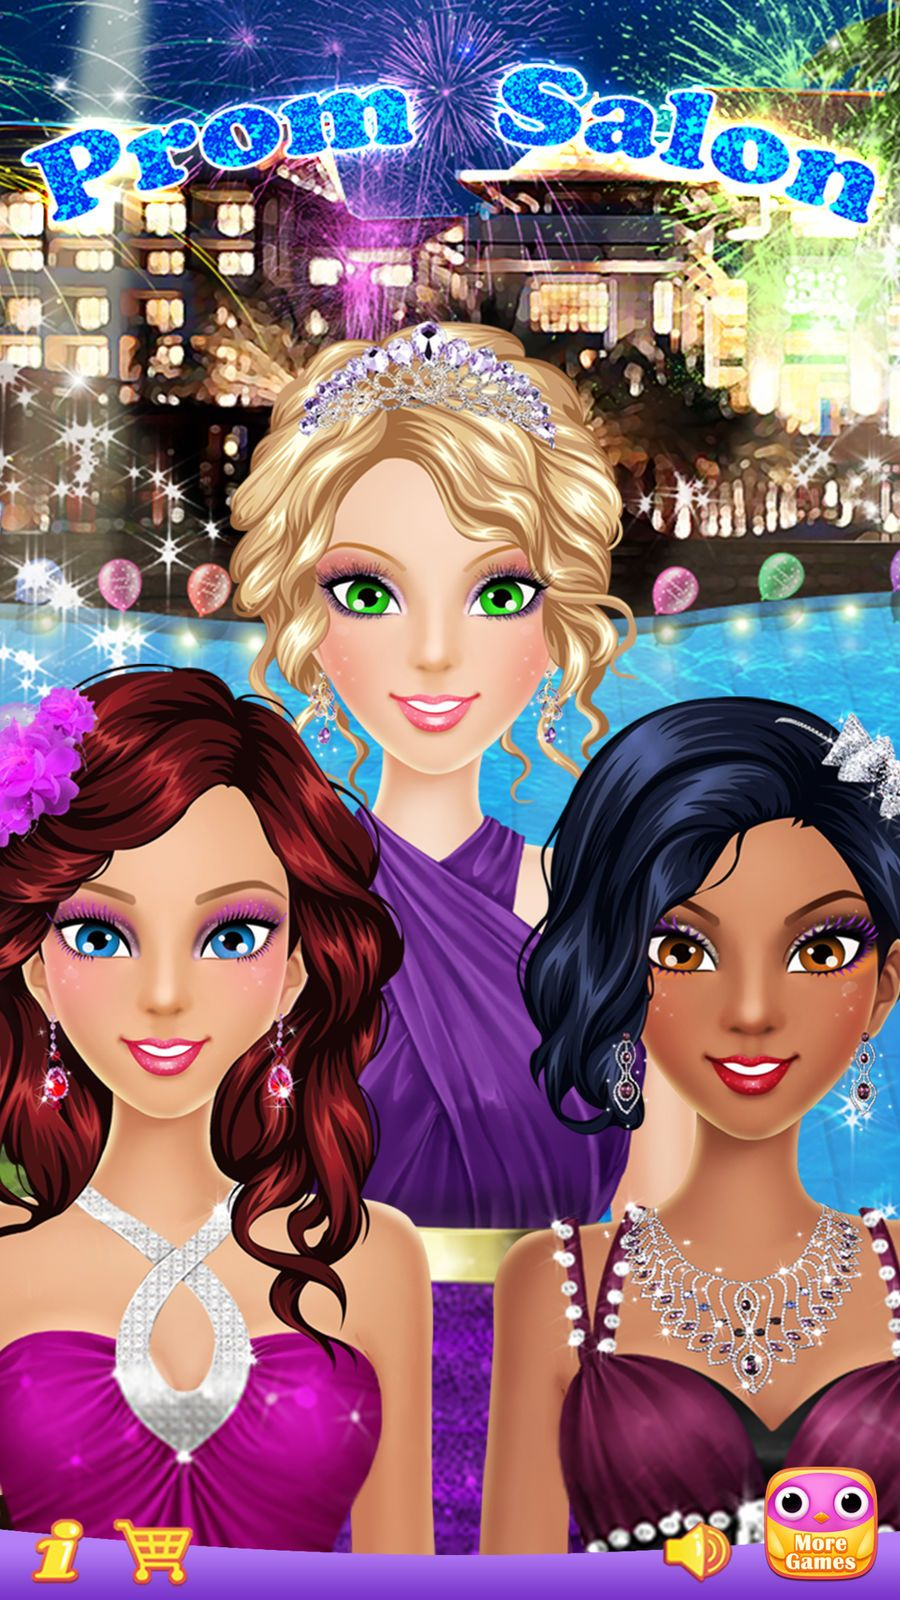 Prom Salon鈩 20 Girls Makeup Dressup And Makeover Games Tech Libii Games Family Girls Makeup Attractive Girls Girl